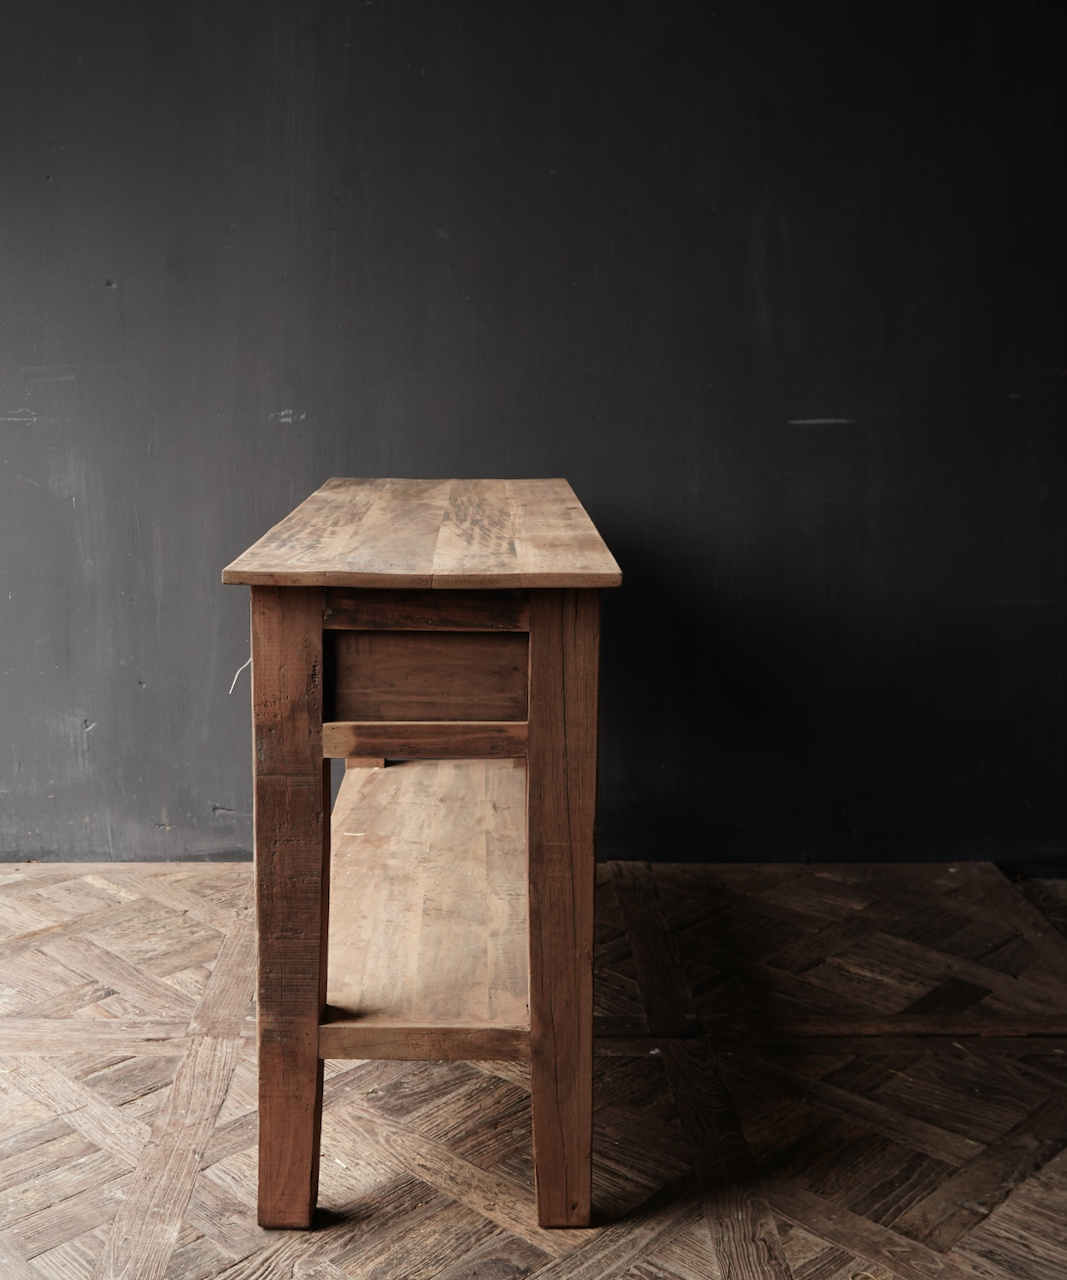 Stoer Robust old wooden side table or wall table with two drawers-2